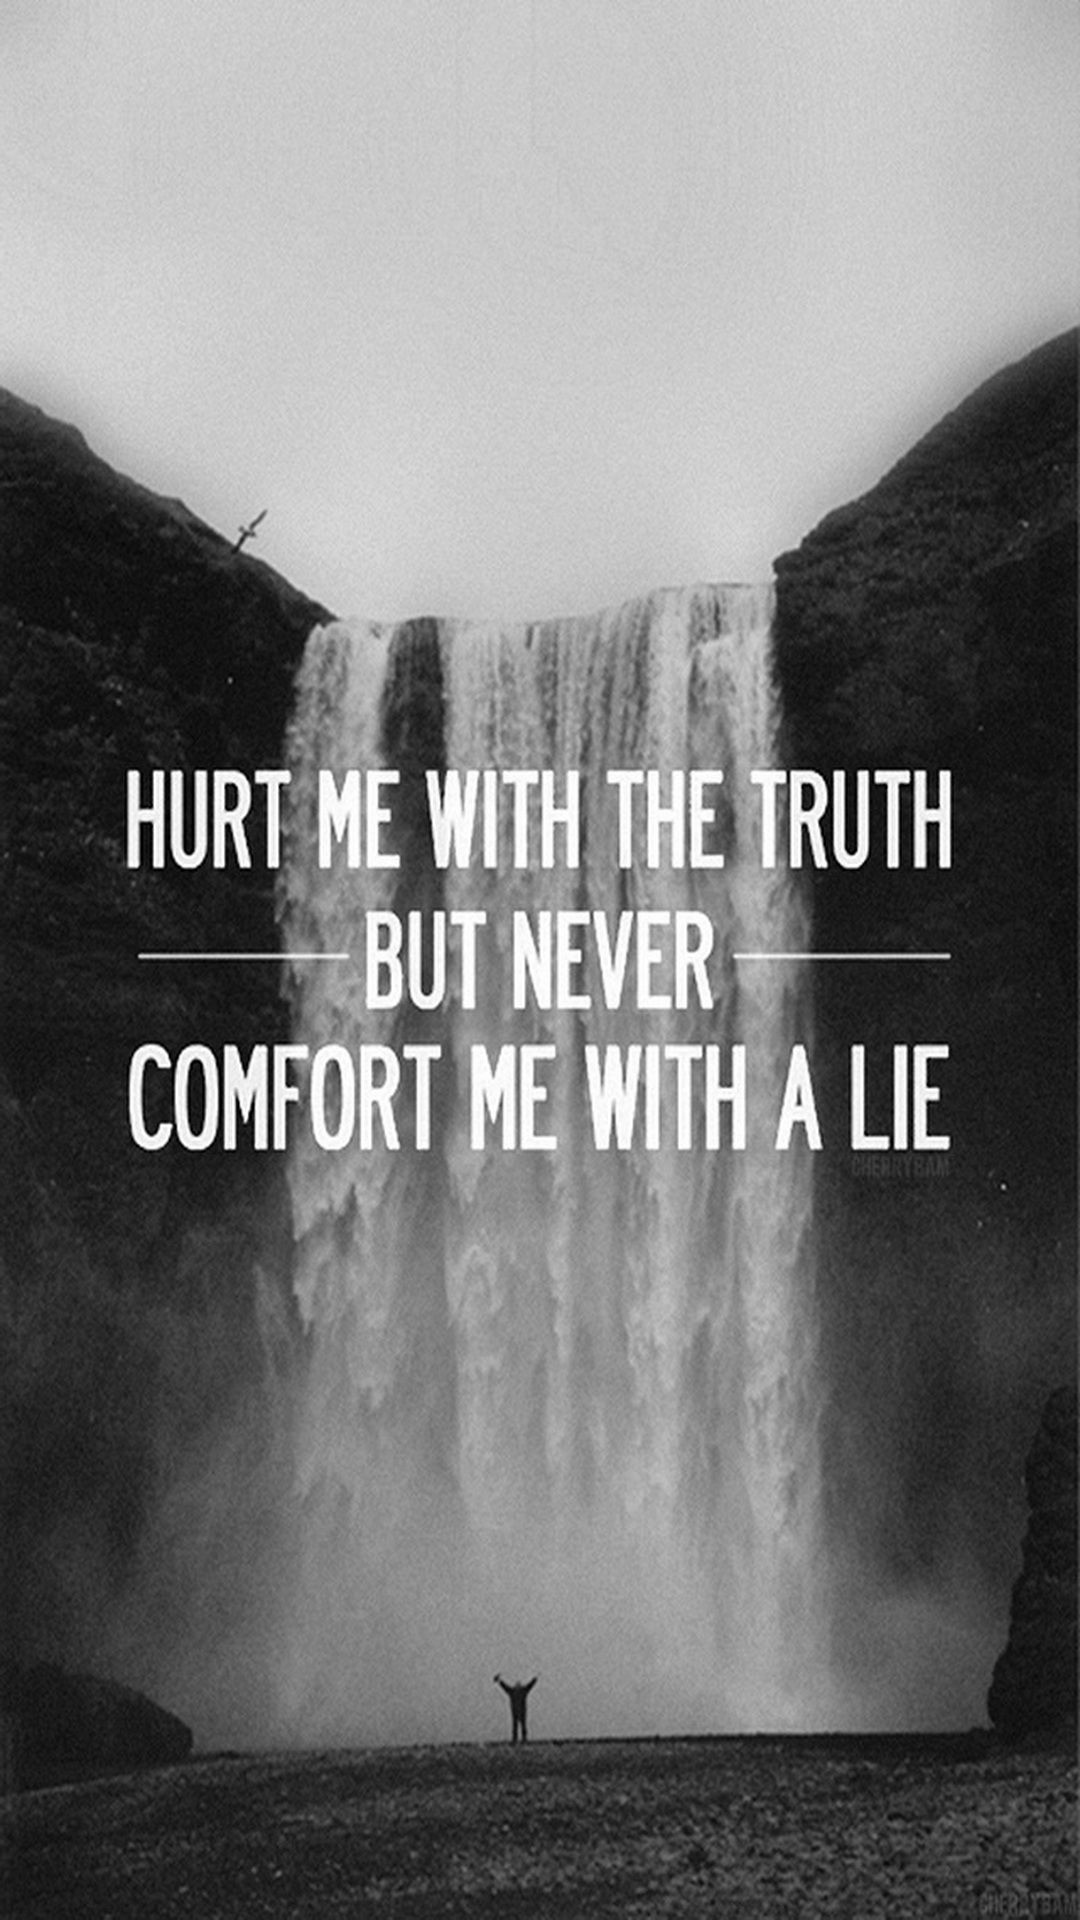 1080x1920 Hurt Me With The Truth Mobile HD Wallpaper - Vactual Papers